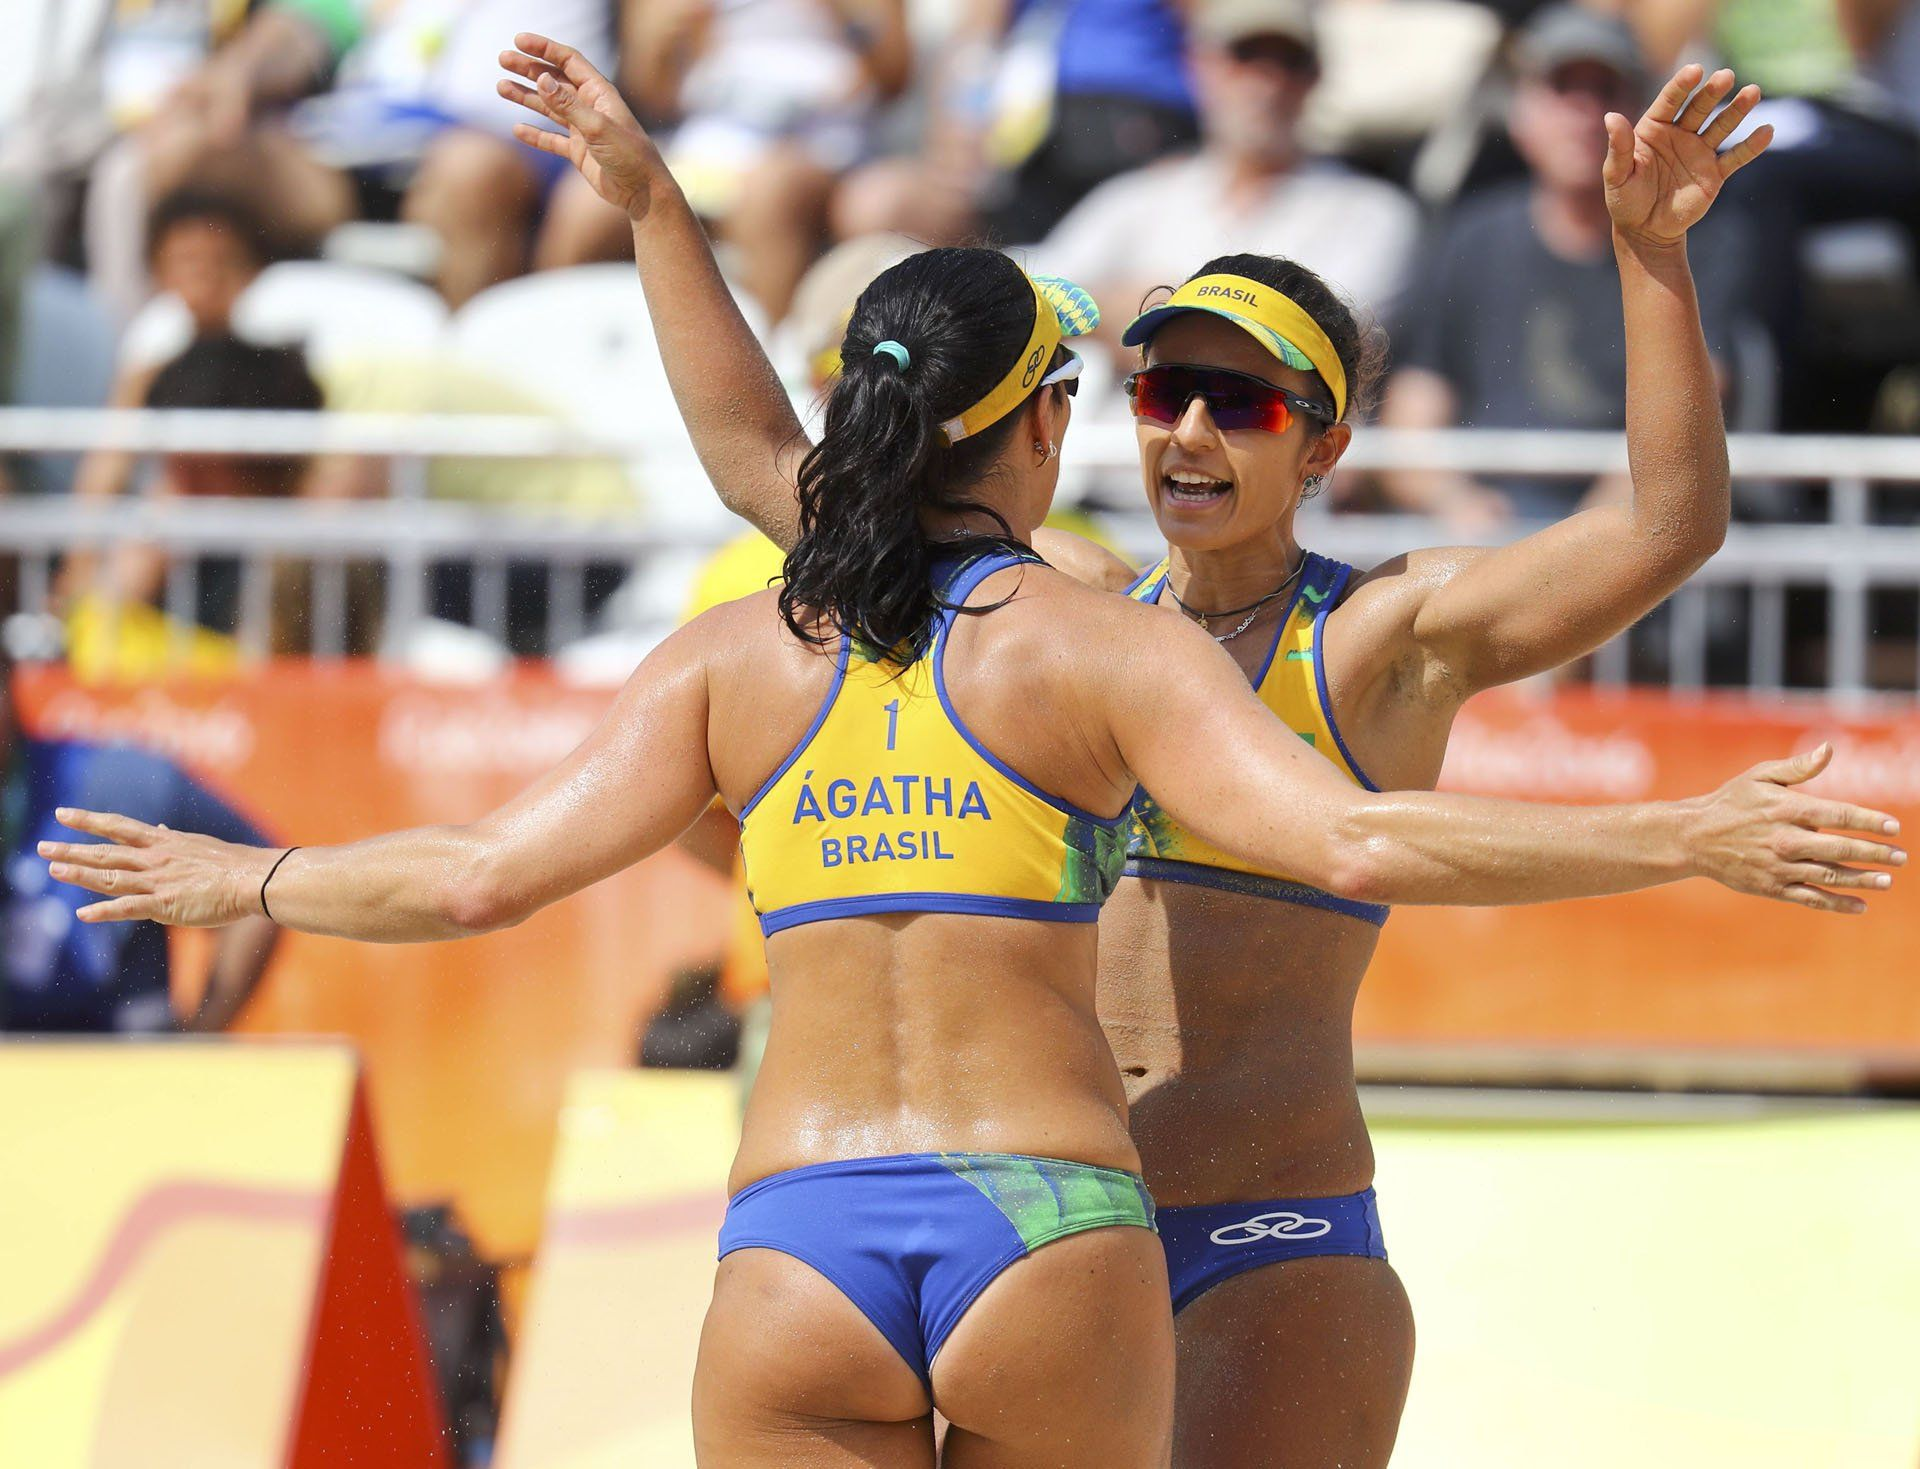 Brasil Argentina 2016 Rio Olympics Beach Volleyball Women S Preliminary Beach Volleyball Arena Rio D Beach Volleyball Muscle Women Rio Olympics 2016